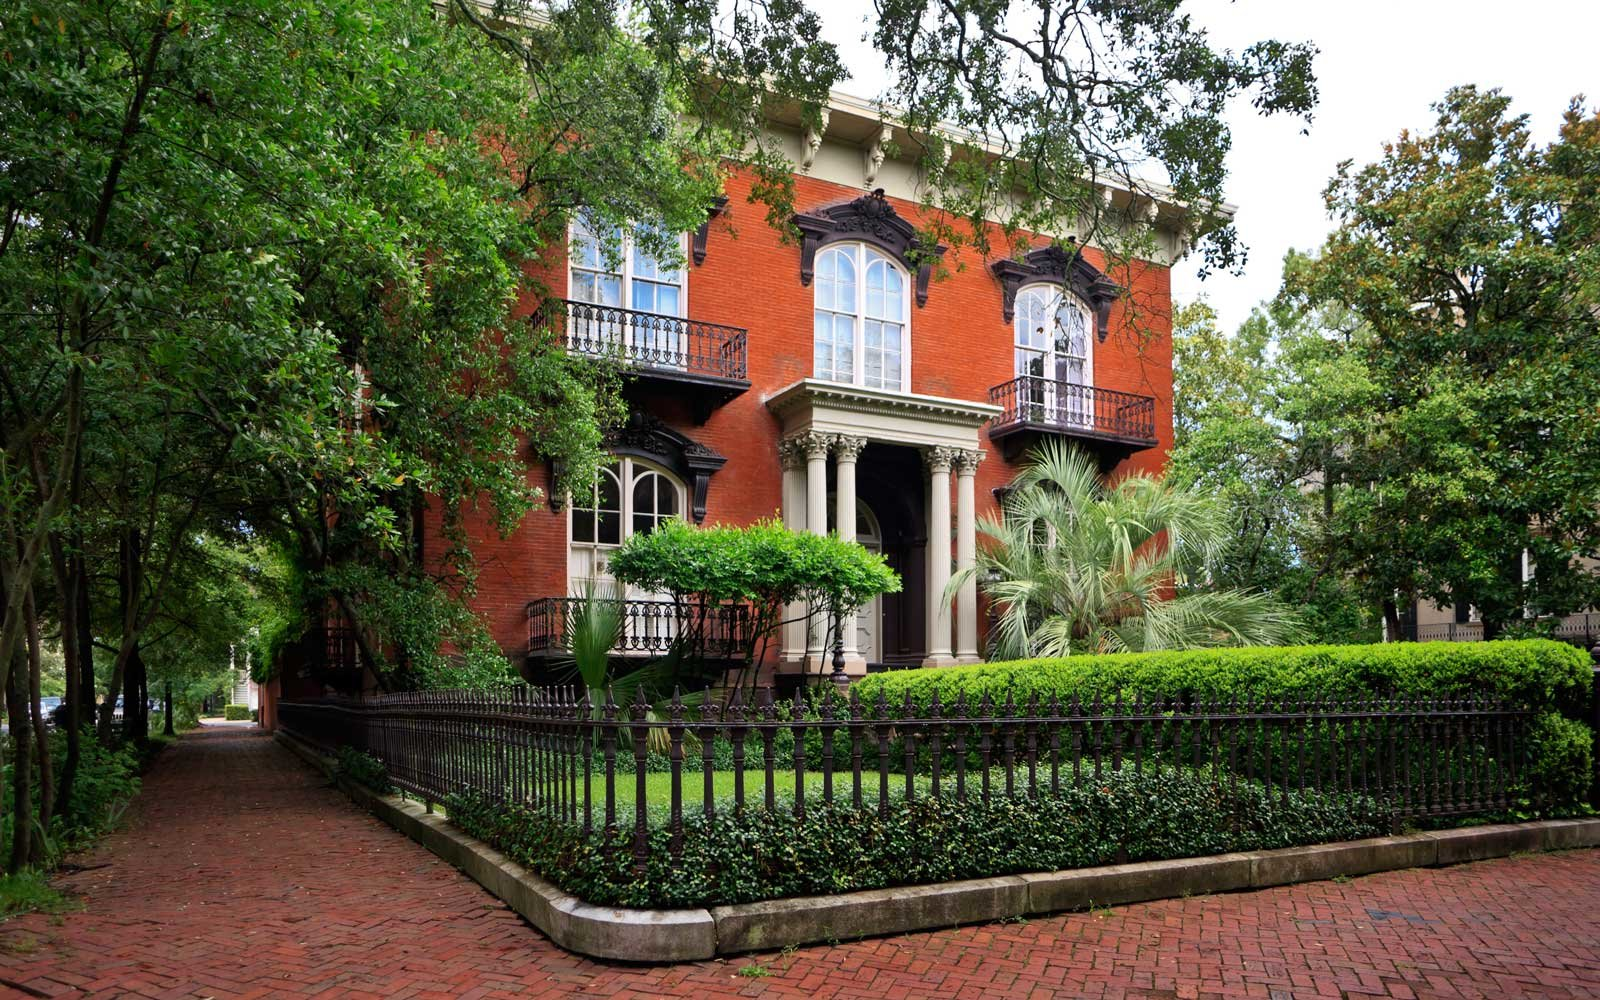 Mercer Williams House on Monterey Square in the Historic District of Savannah, Georgia.